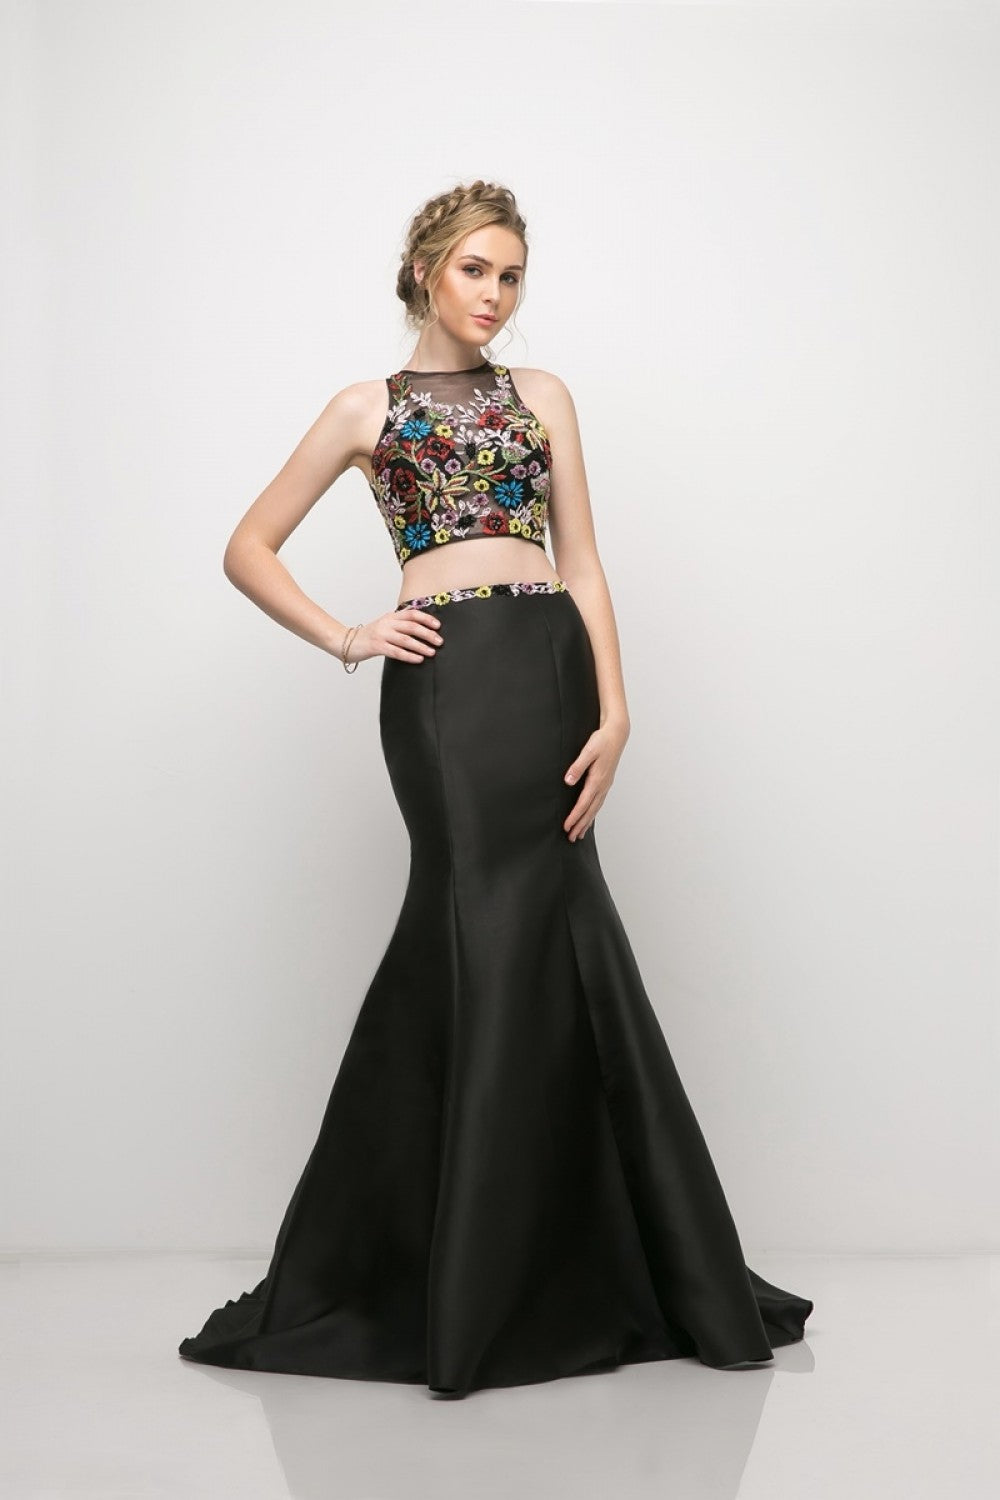 Two Piece Mermaid Dress With Beaded Floral Detail, Mikado Skirt And Keyhole Back